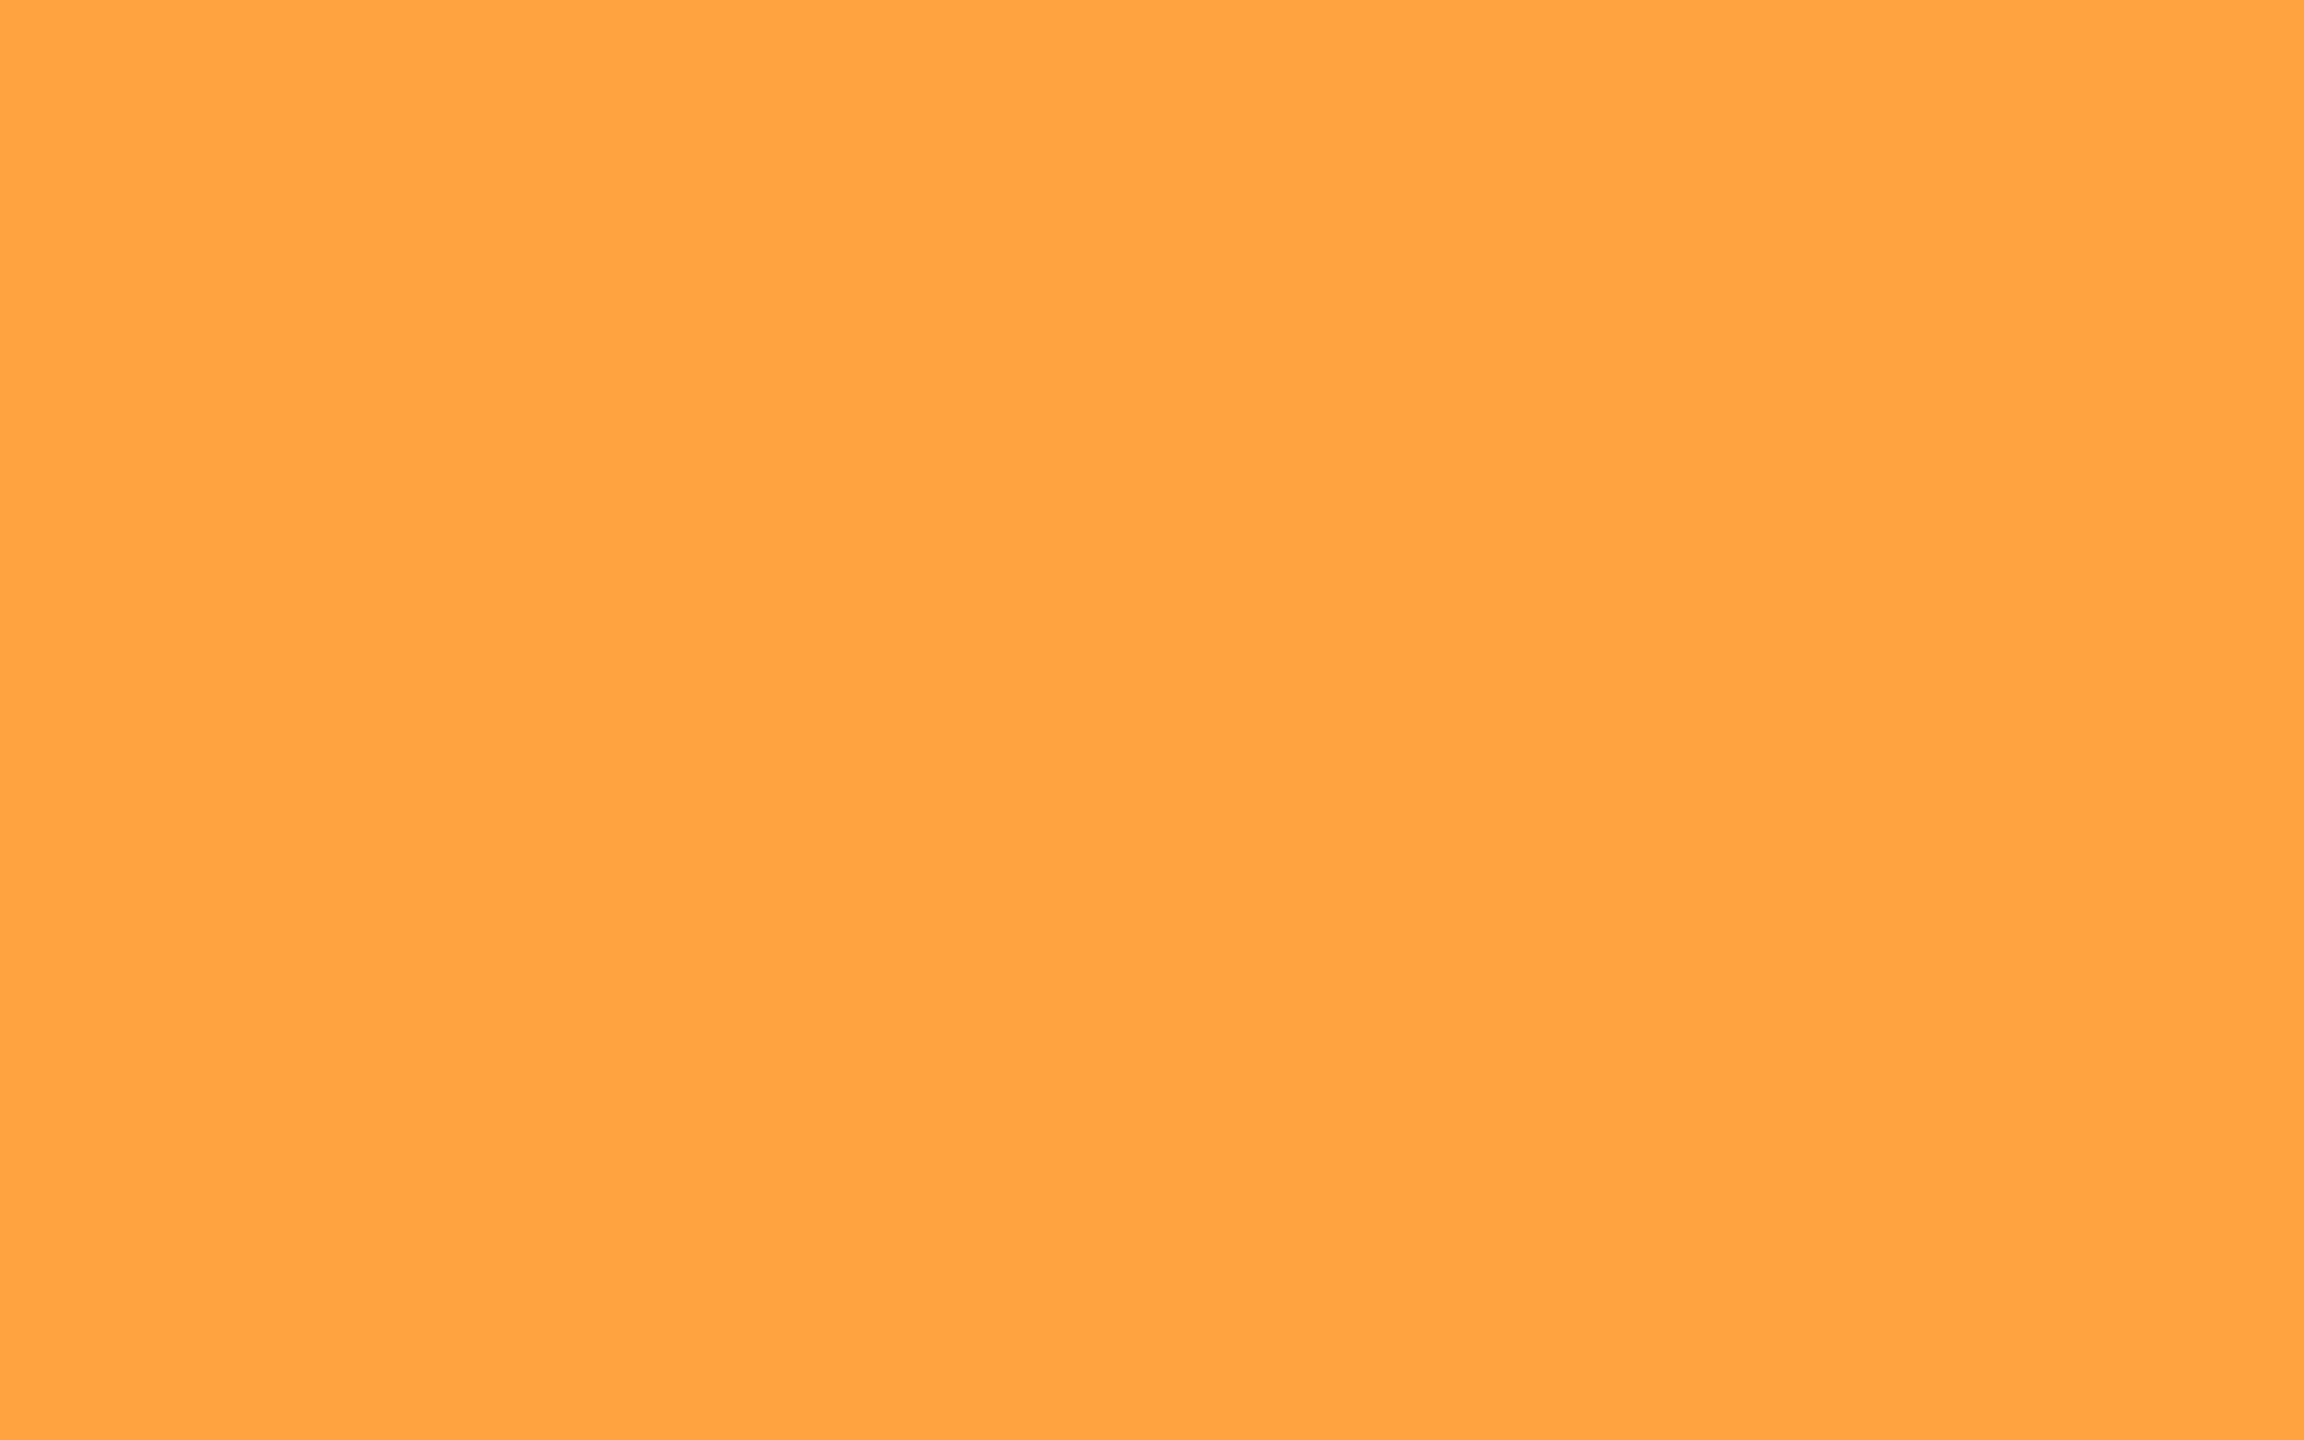 2304x1440 Neon Carrot Solid Color Background